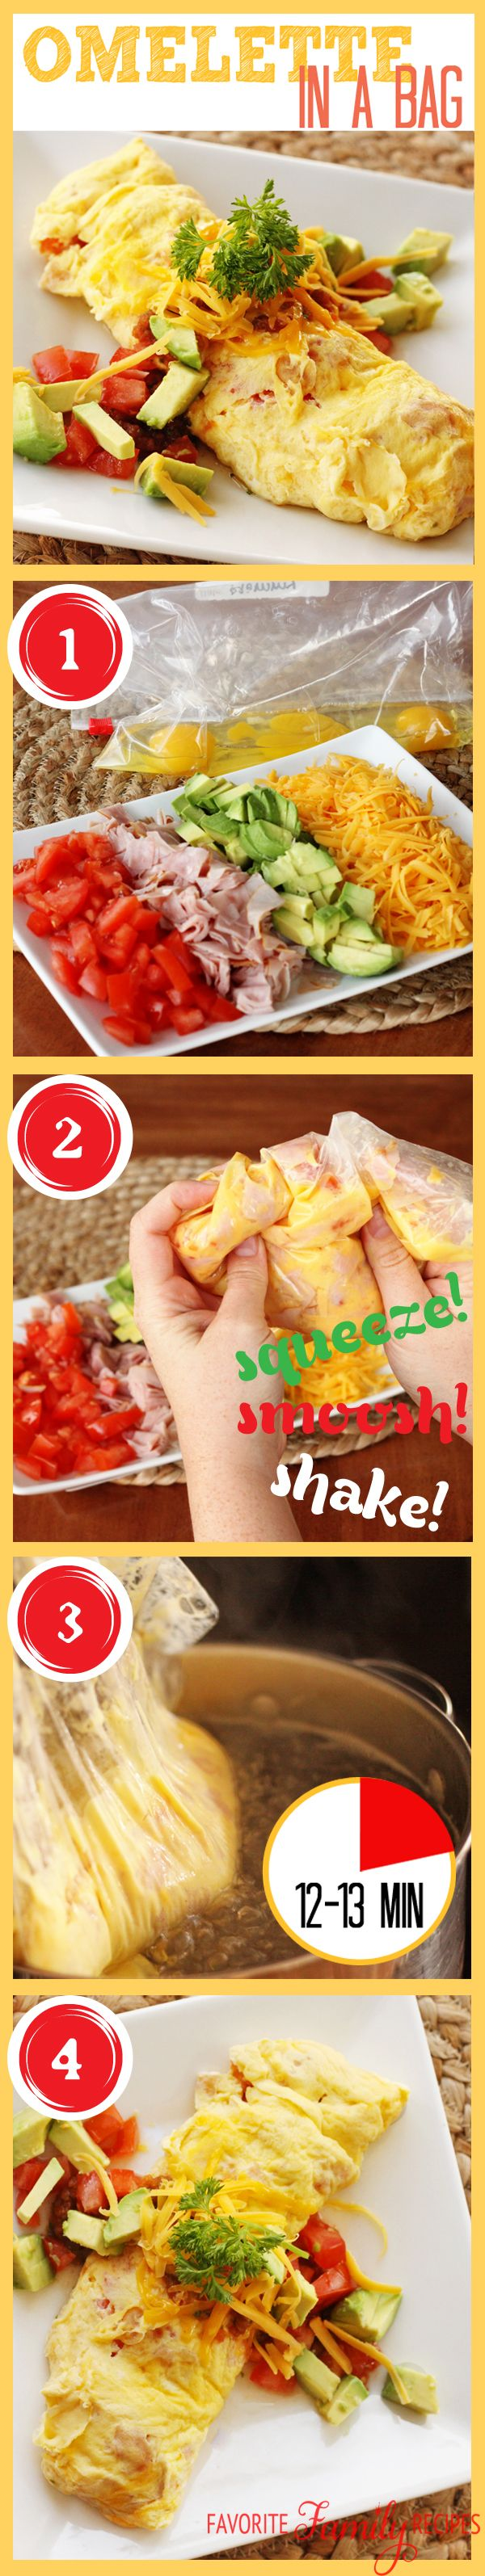 Omelette in a Bag - Favorite Family Recipes